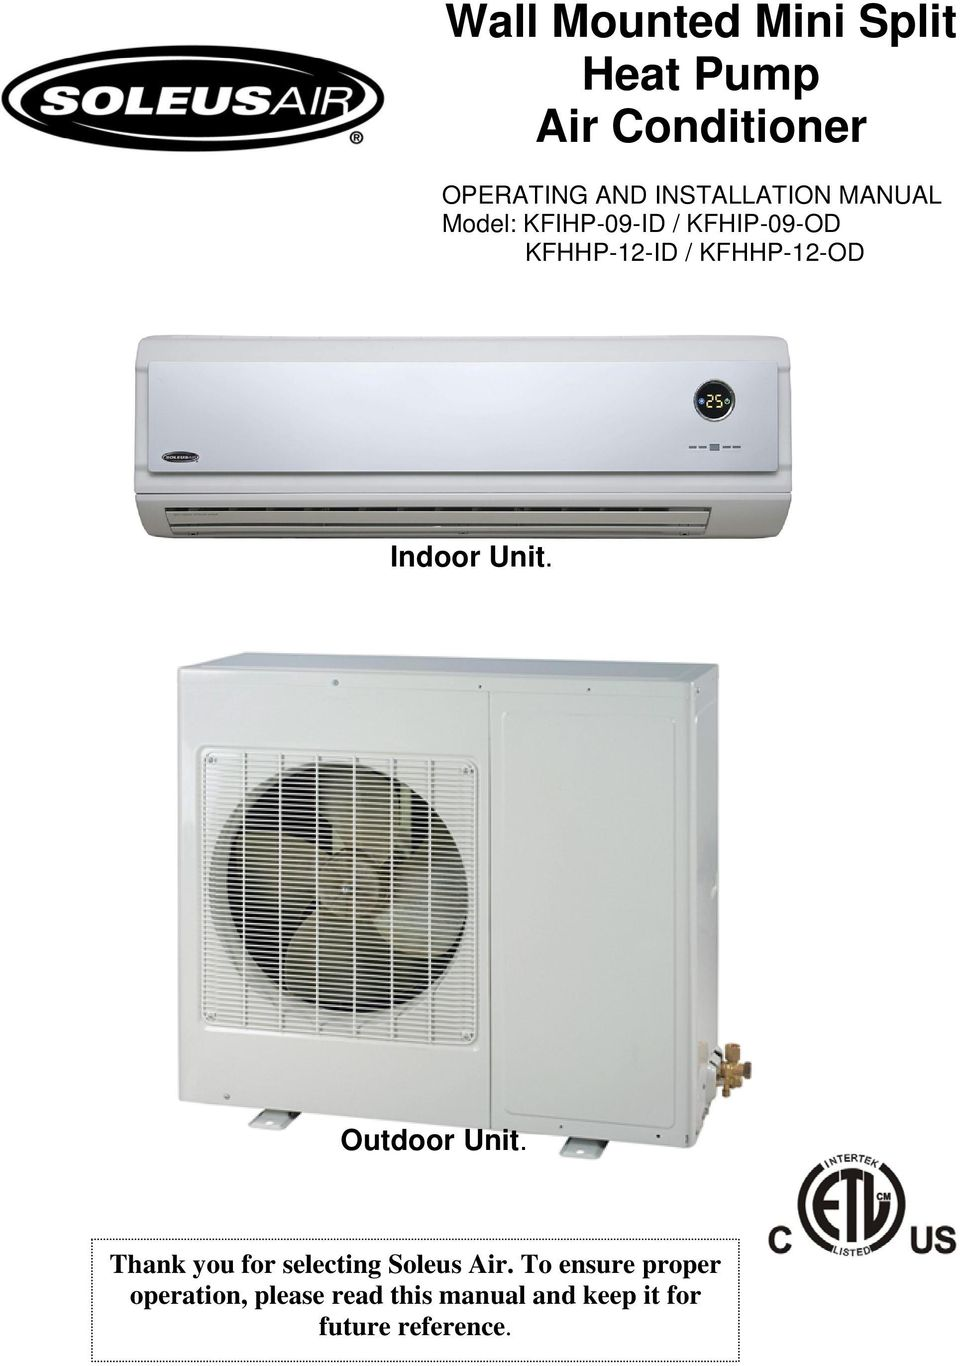 hight resolution of kfhhp 12 od indoor unit outdoor unit